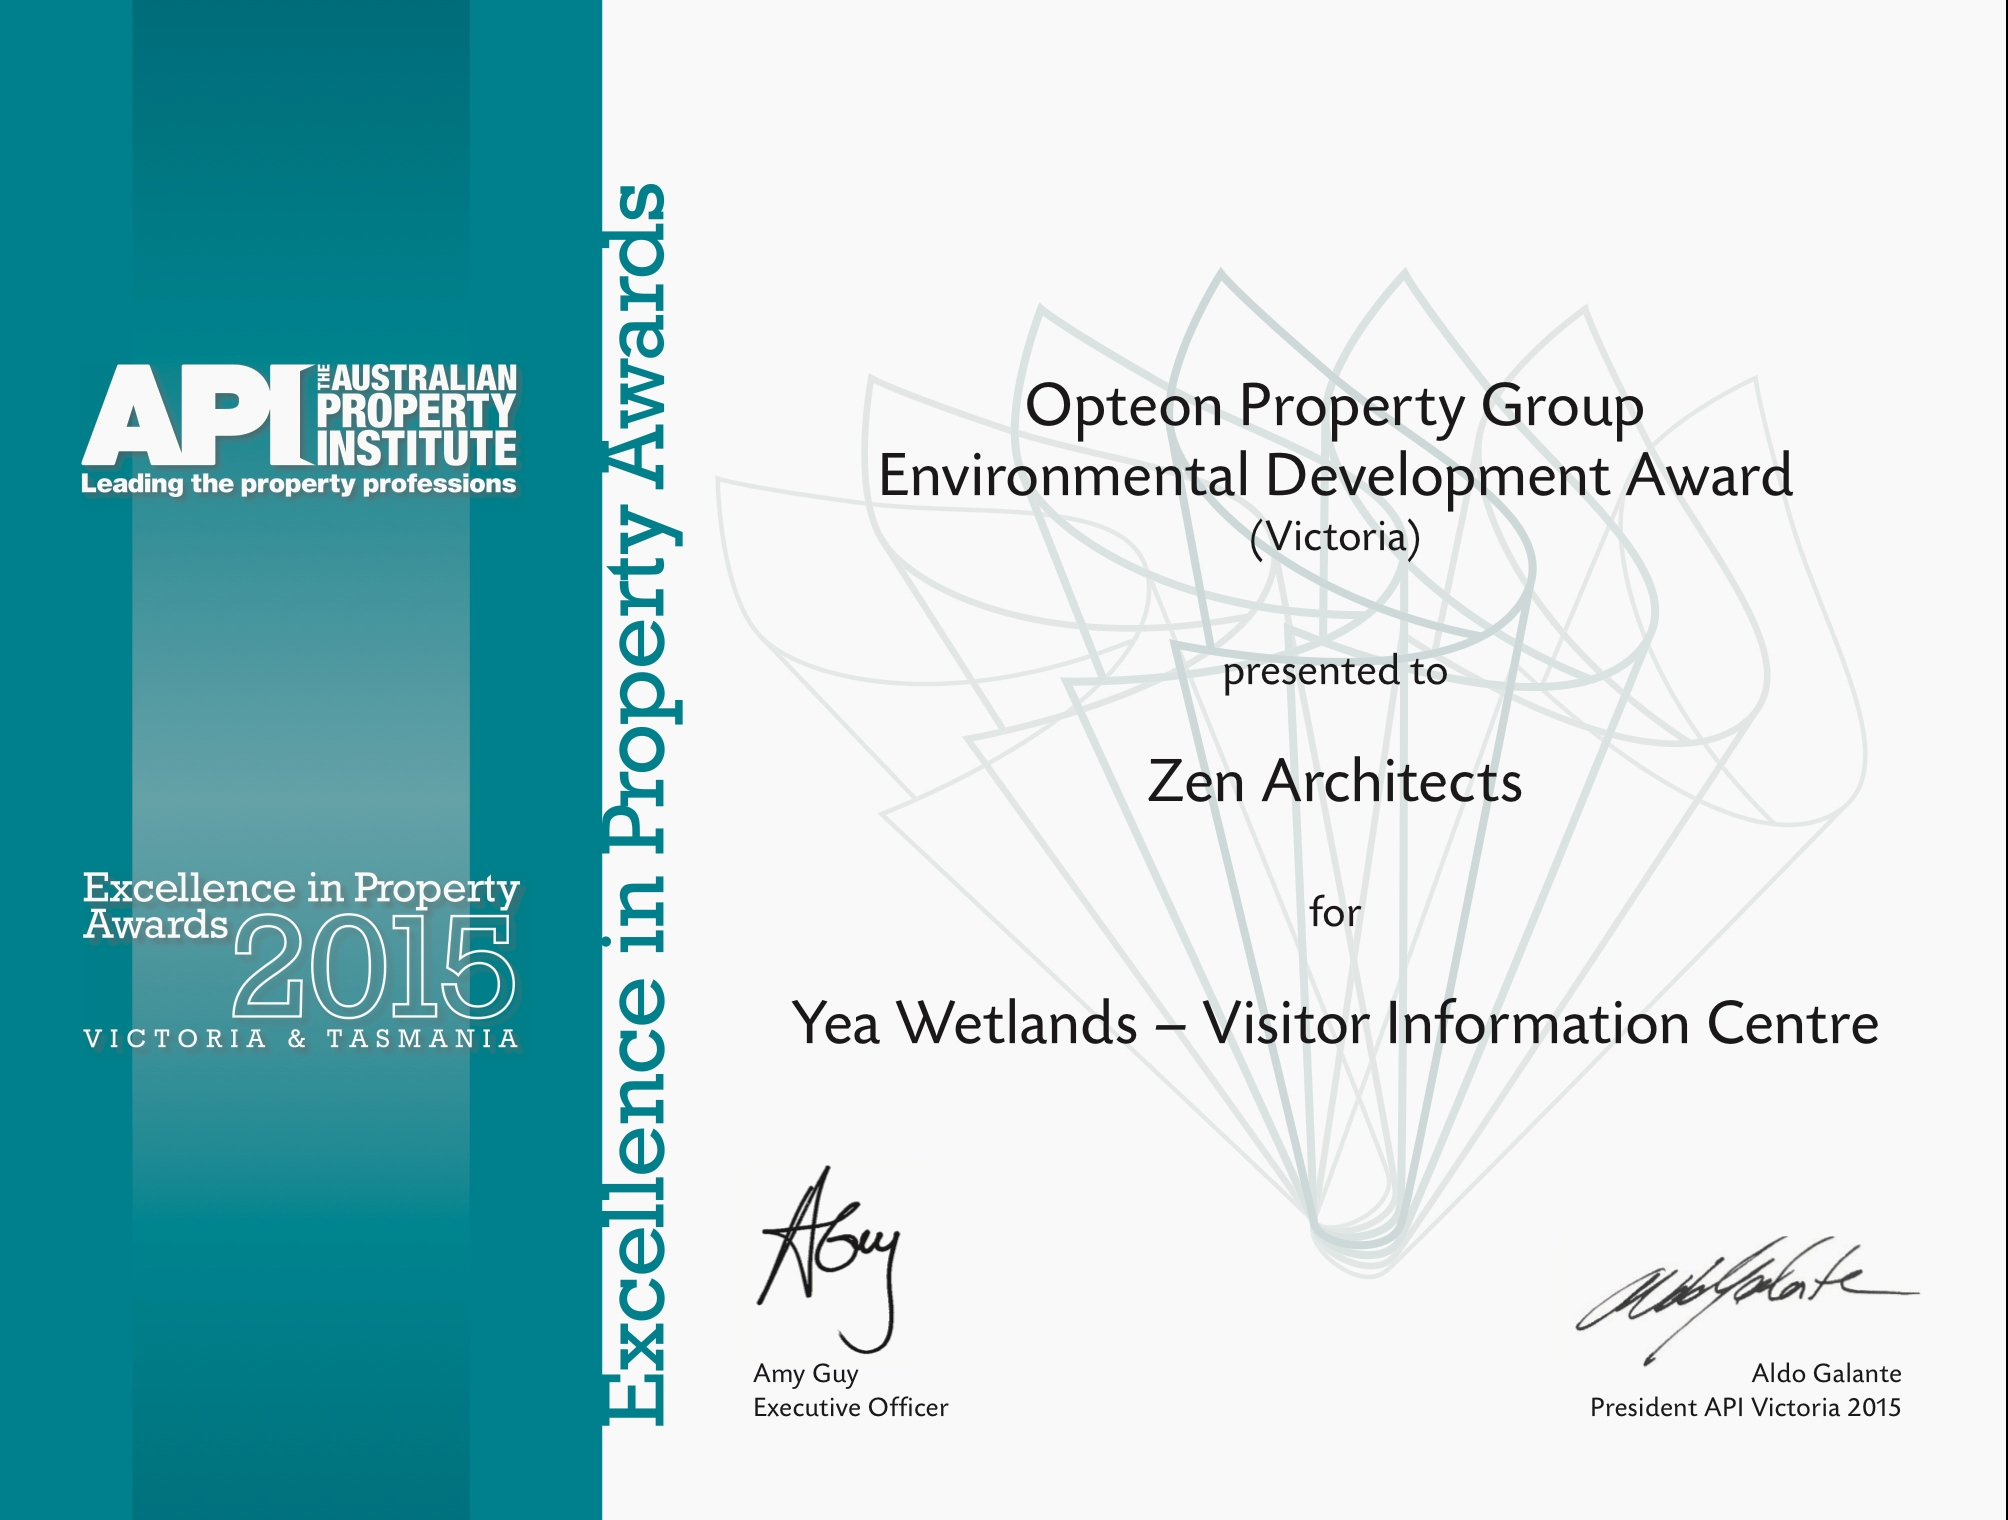 2016_Australian Property Institute_Winner_Environmental Development Award.jpg